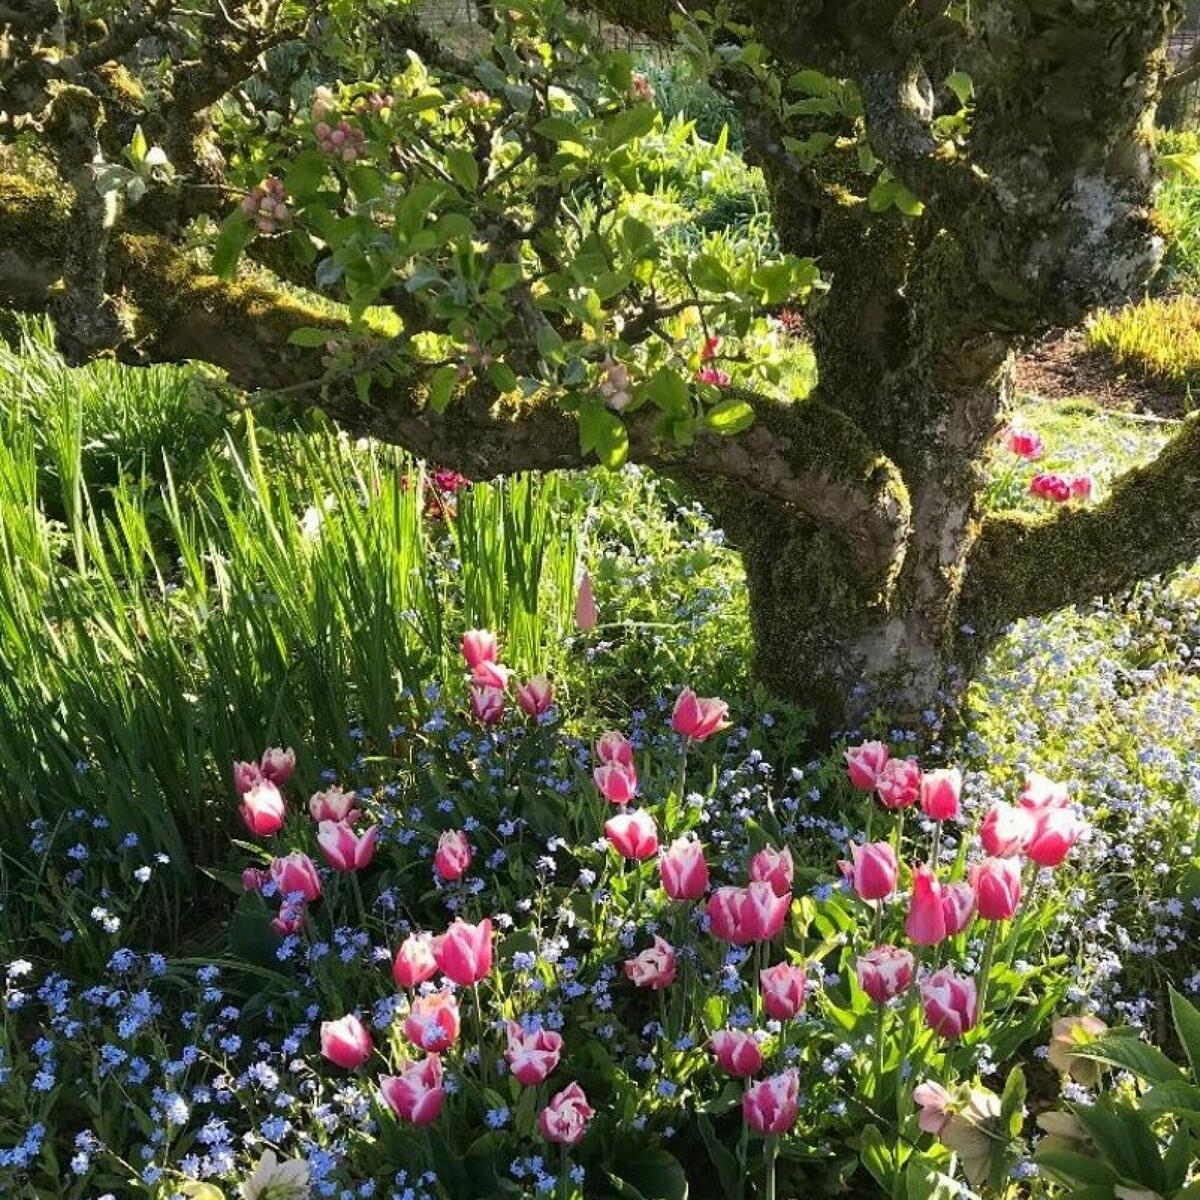 Spring flowers under an ancient apple tree